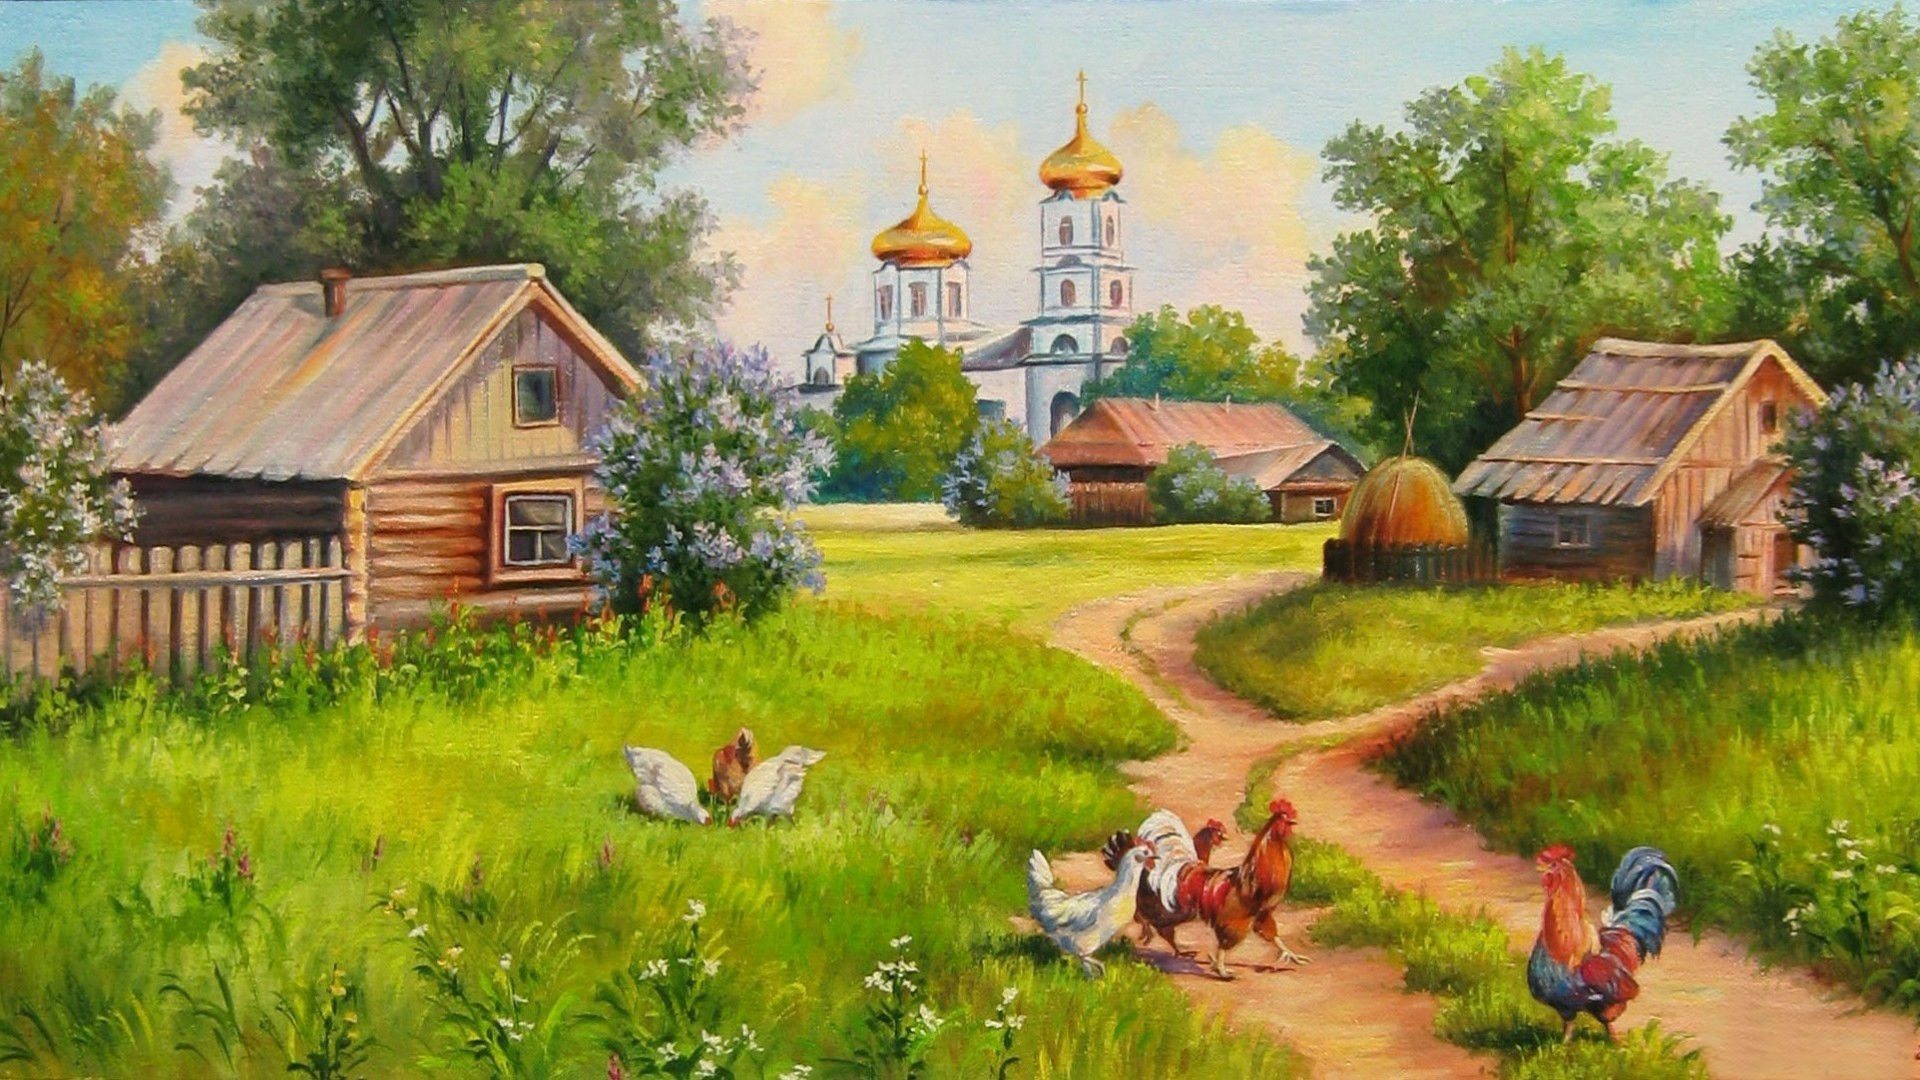 Village home wallpaper wallpapersafari for Wallpaper home cartoon